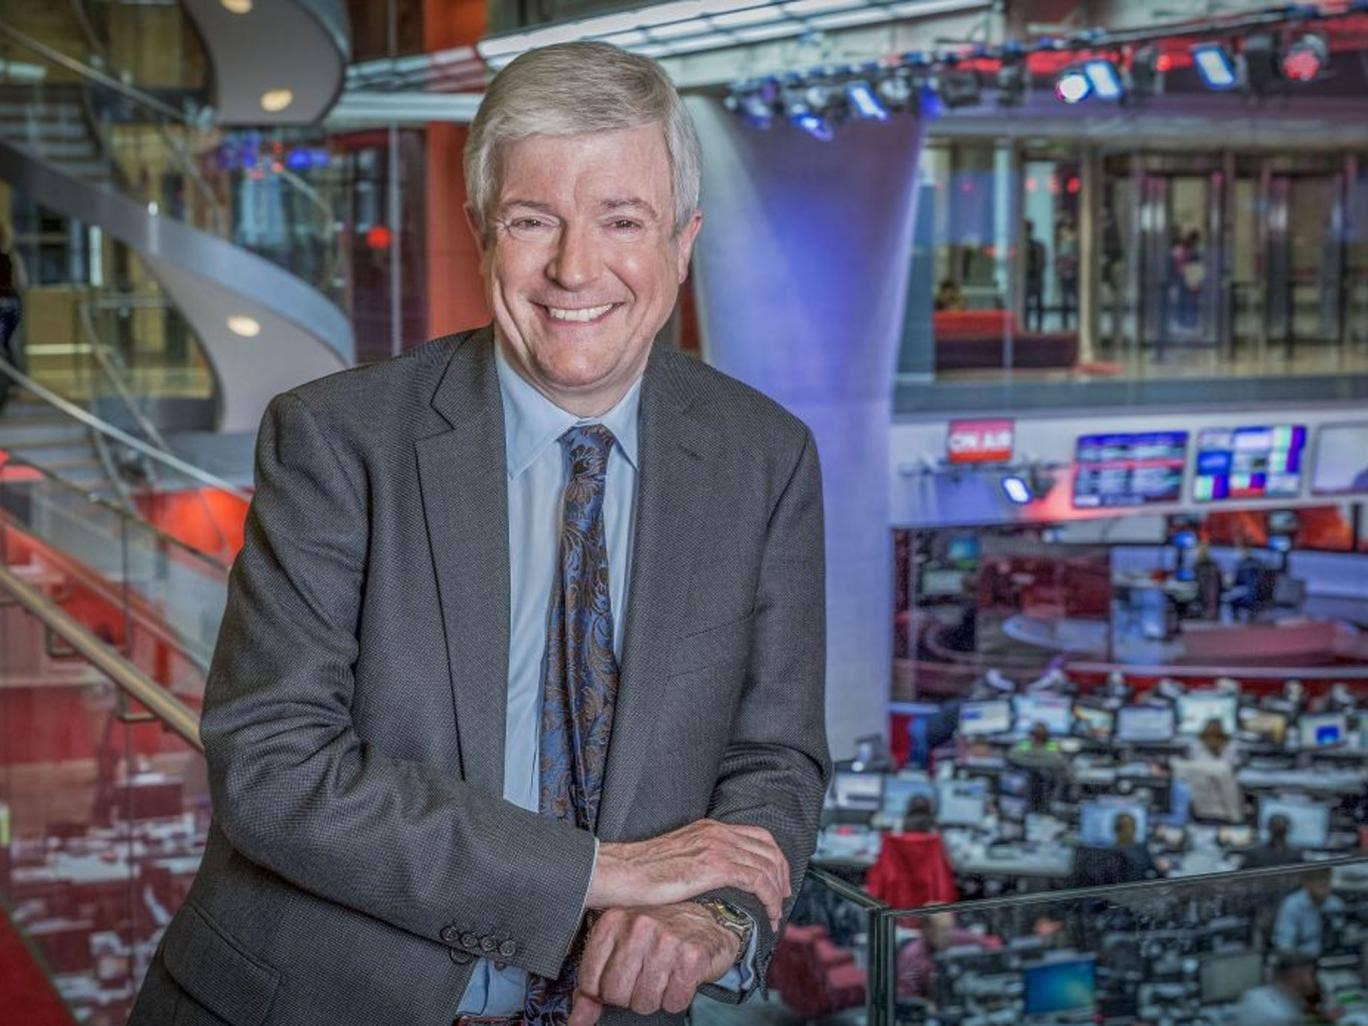 Lord Hall's plans for a 'personal' BBC might not suit everyone